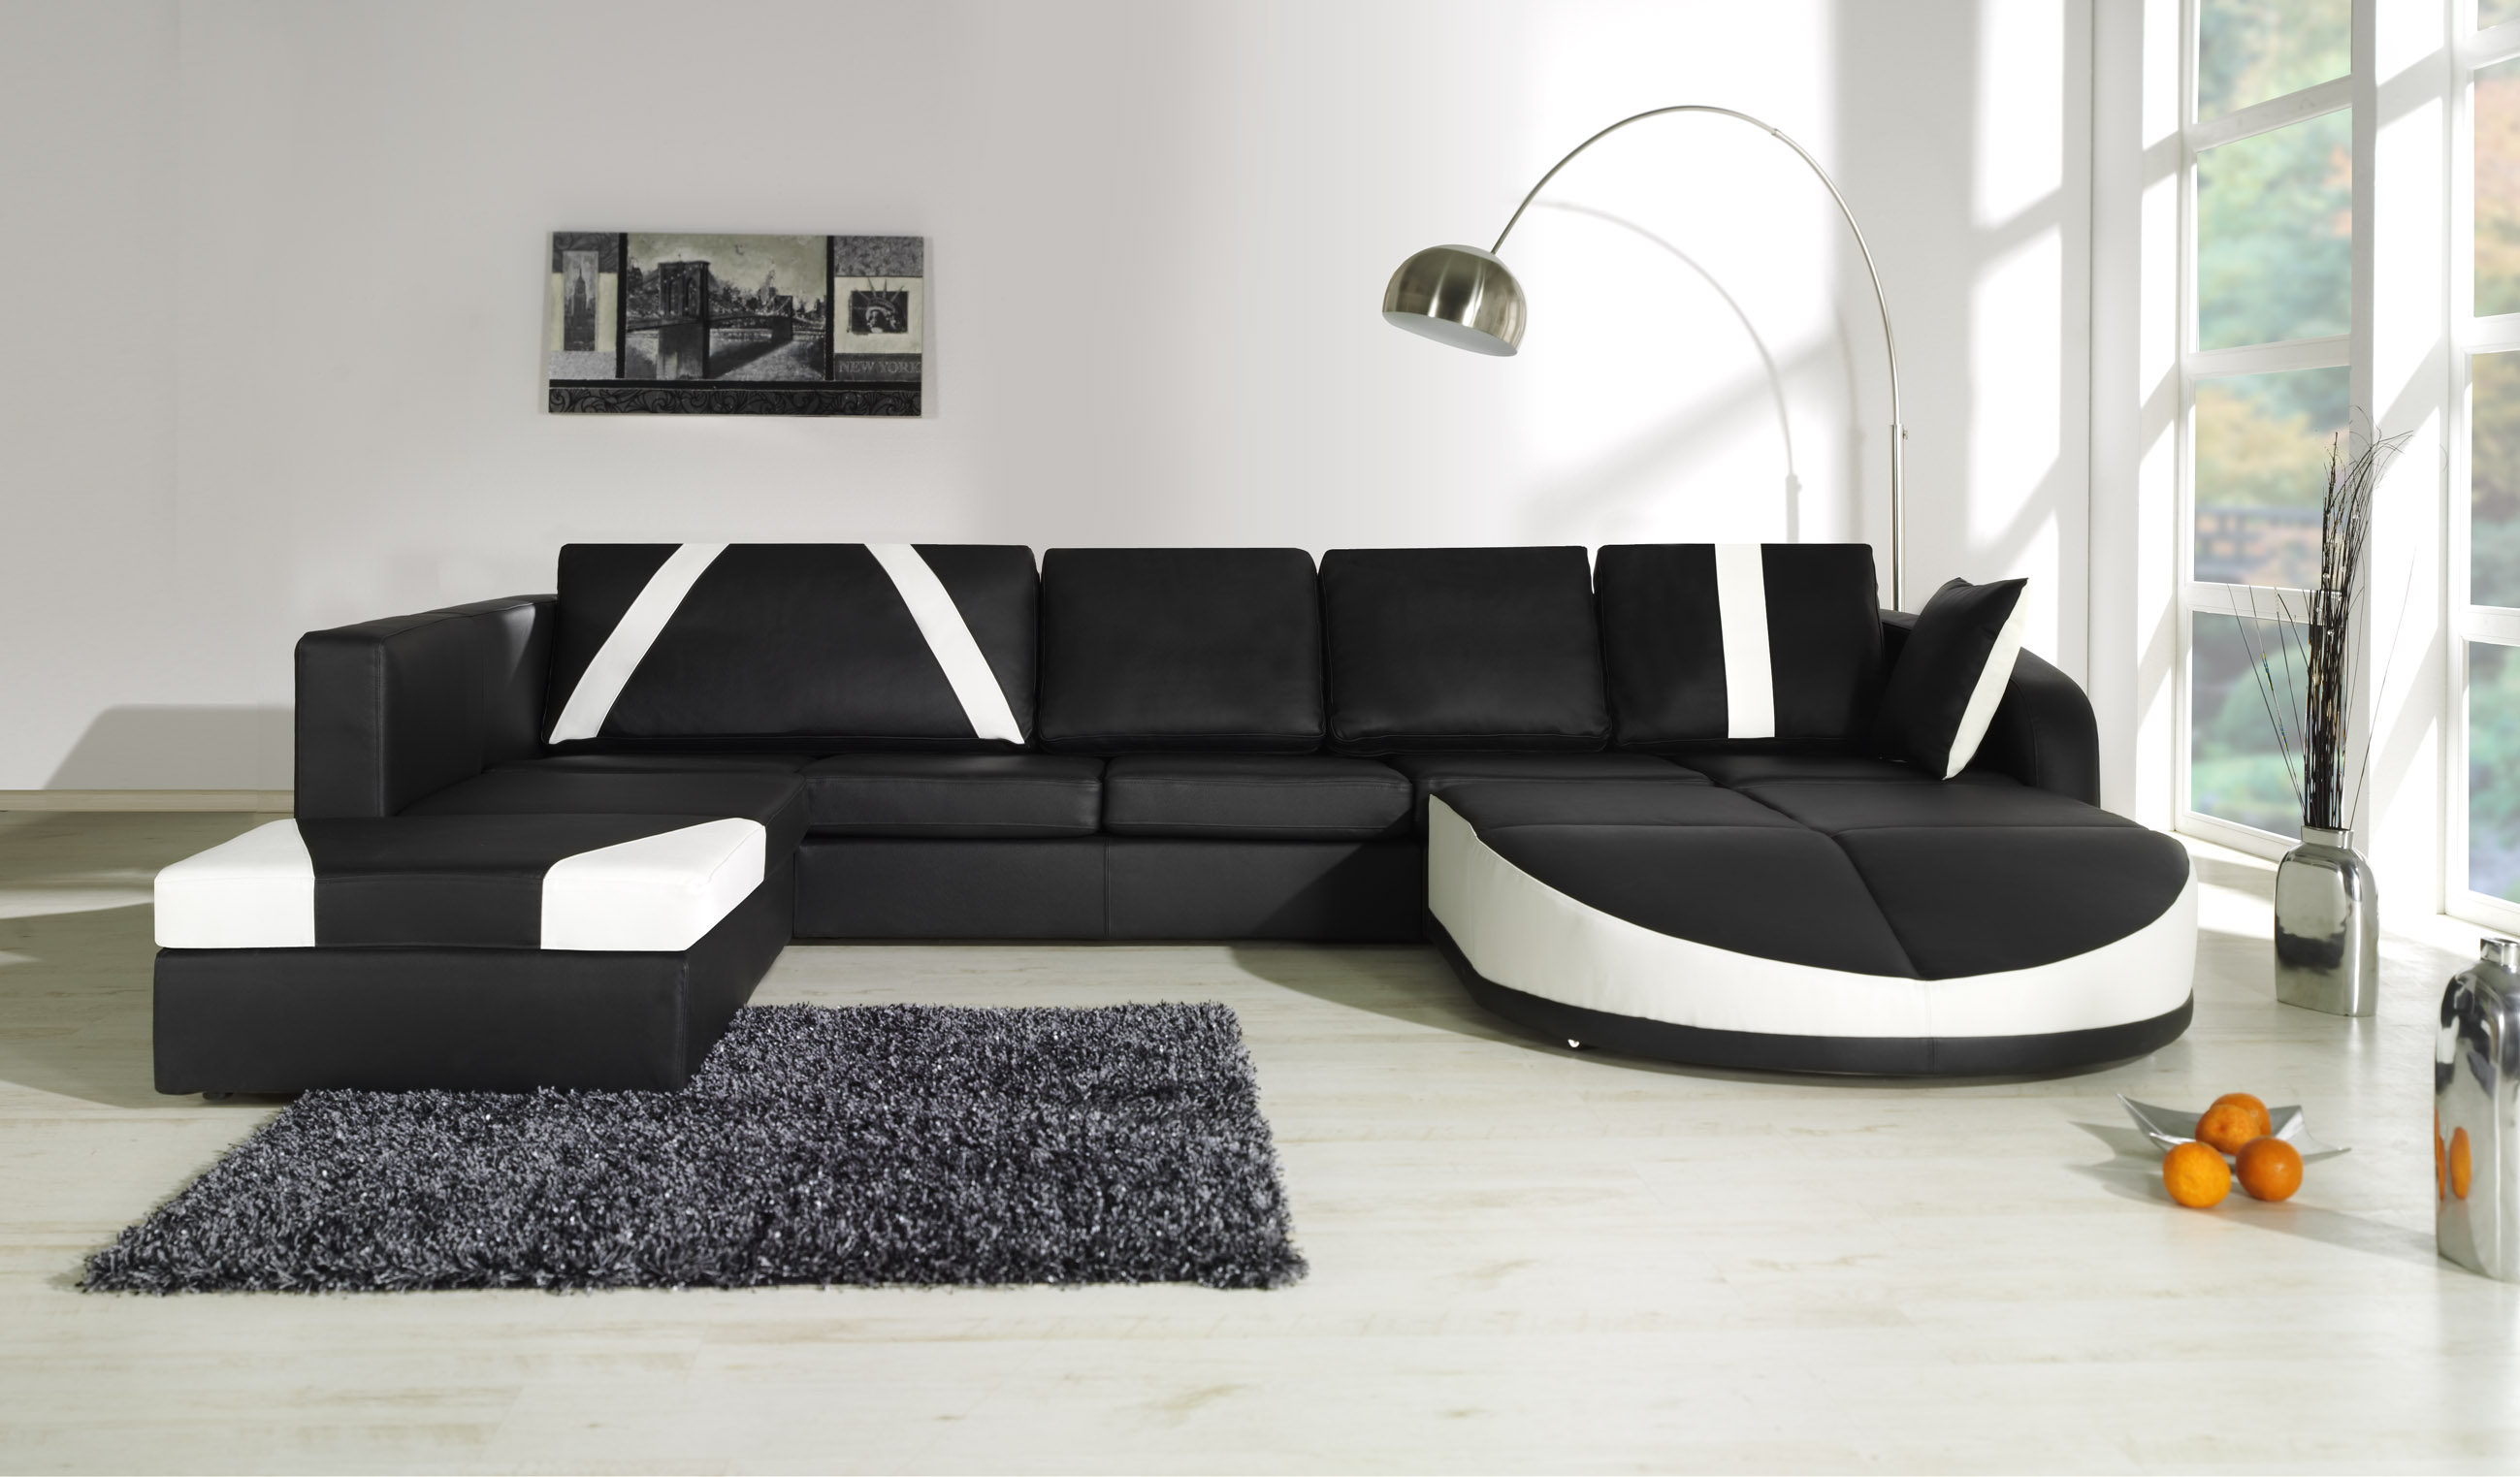 canap en cuir pas cher royal sofa id e de canap et meuble maison. Black Bedroom Furniture Sets. Home Design Ideas